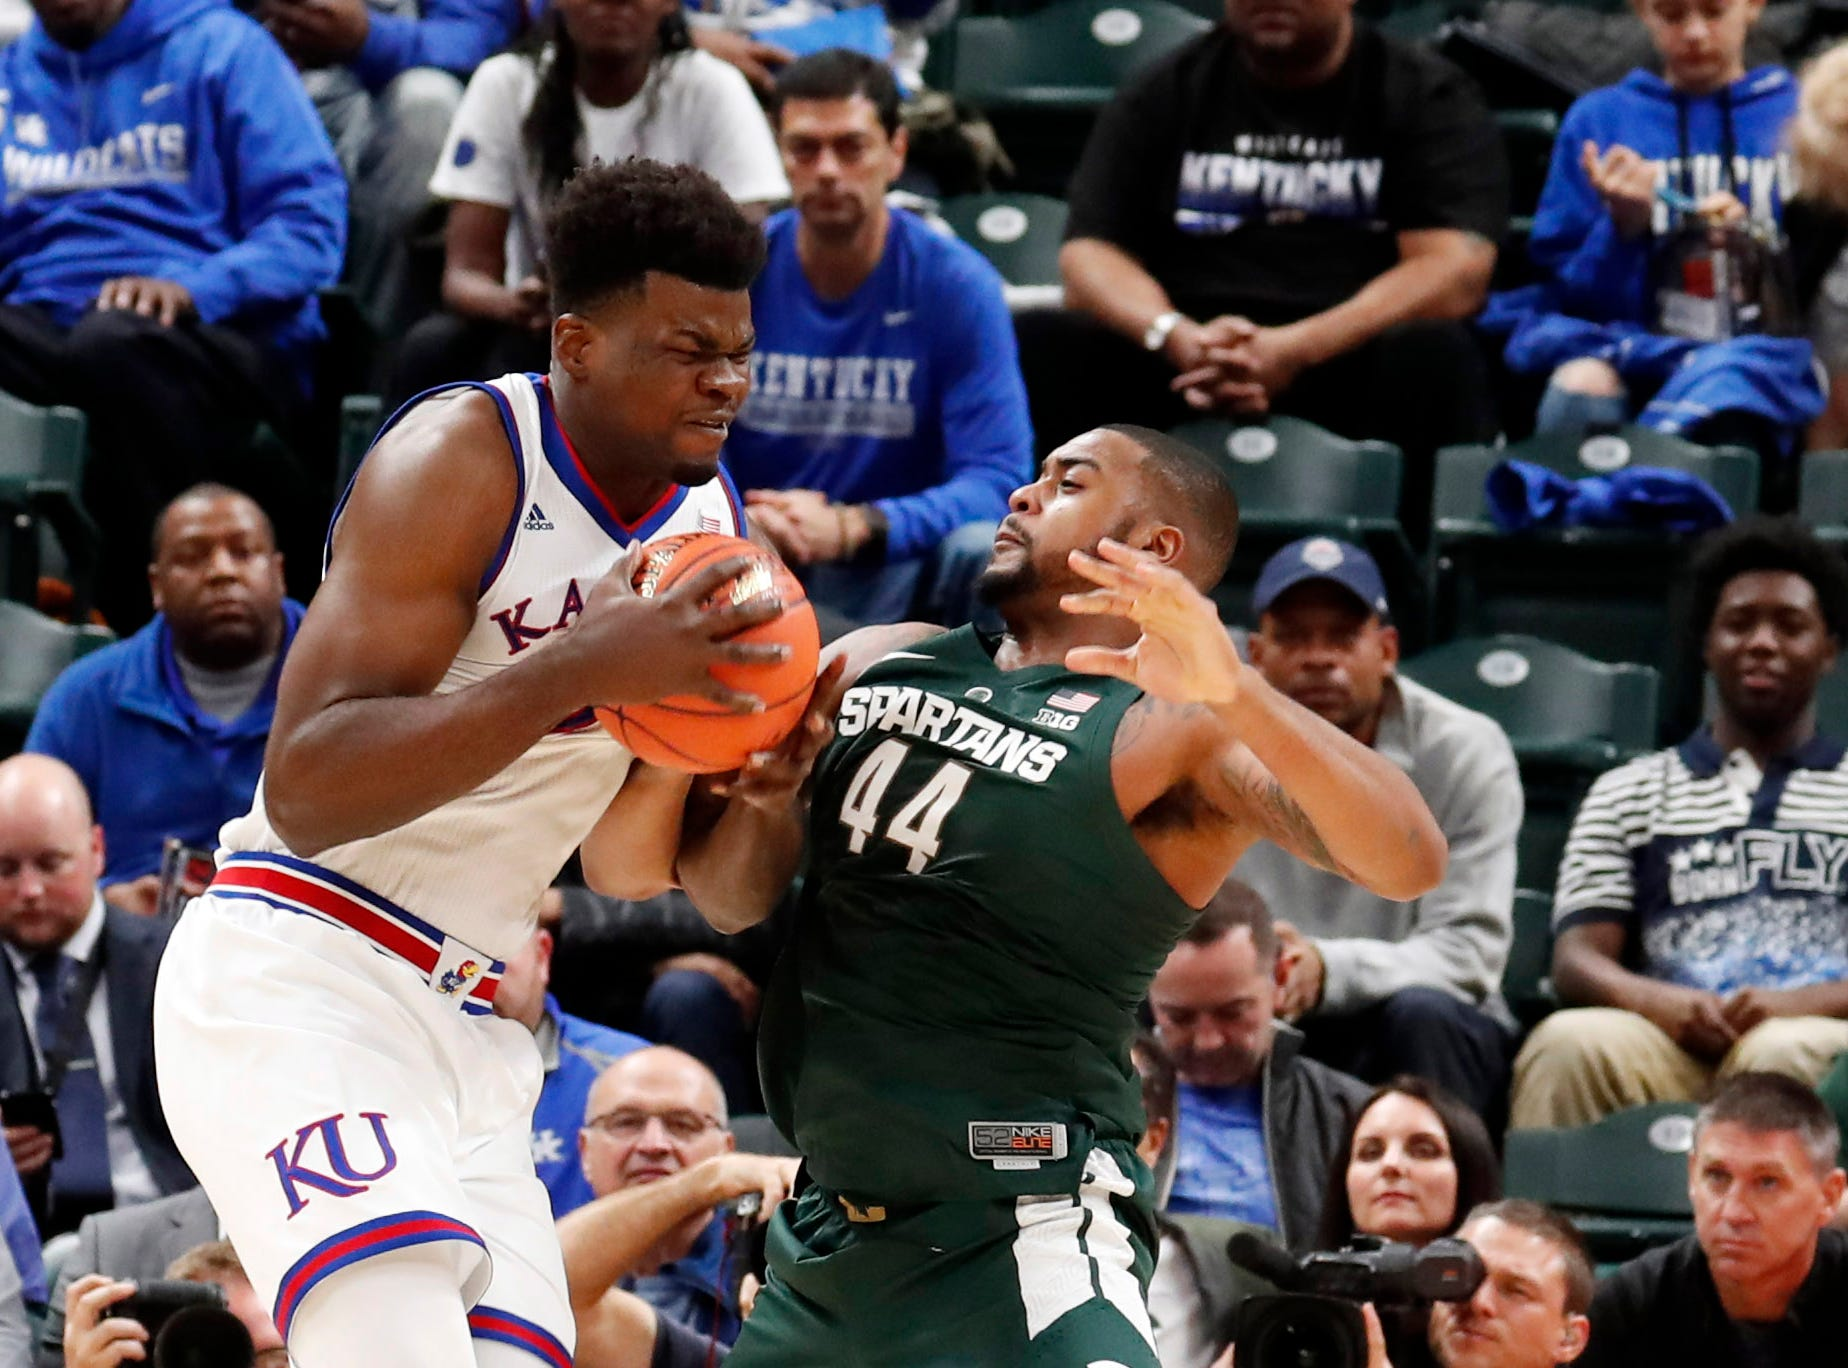 Michigan State basketball: What went right and wrong against Kansas